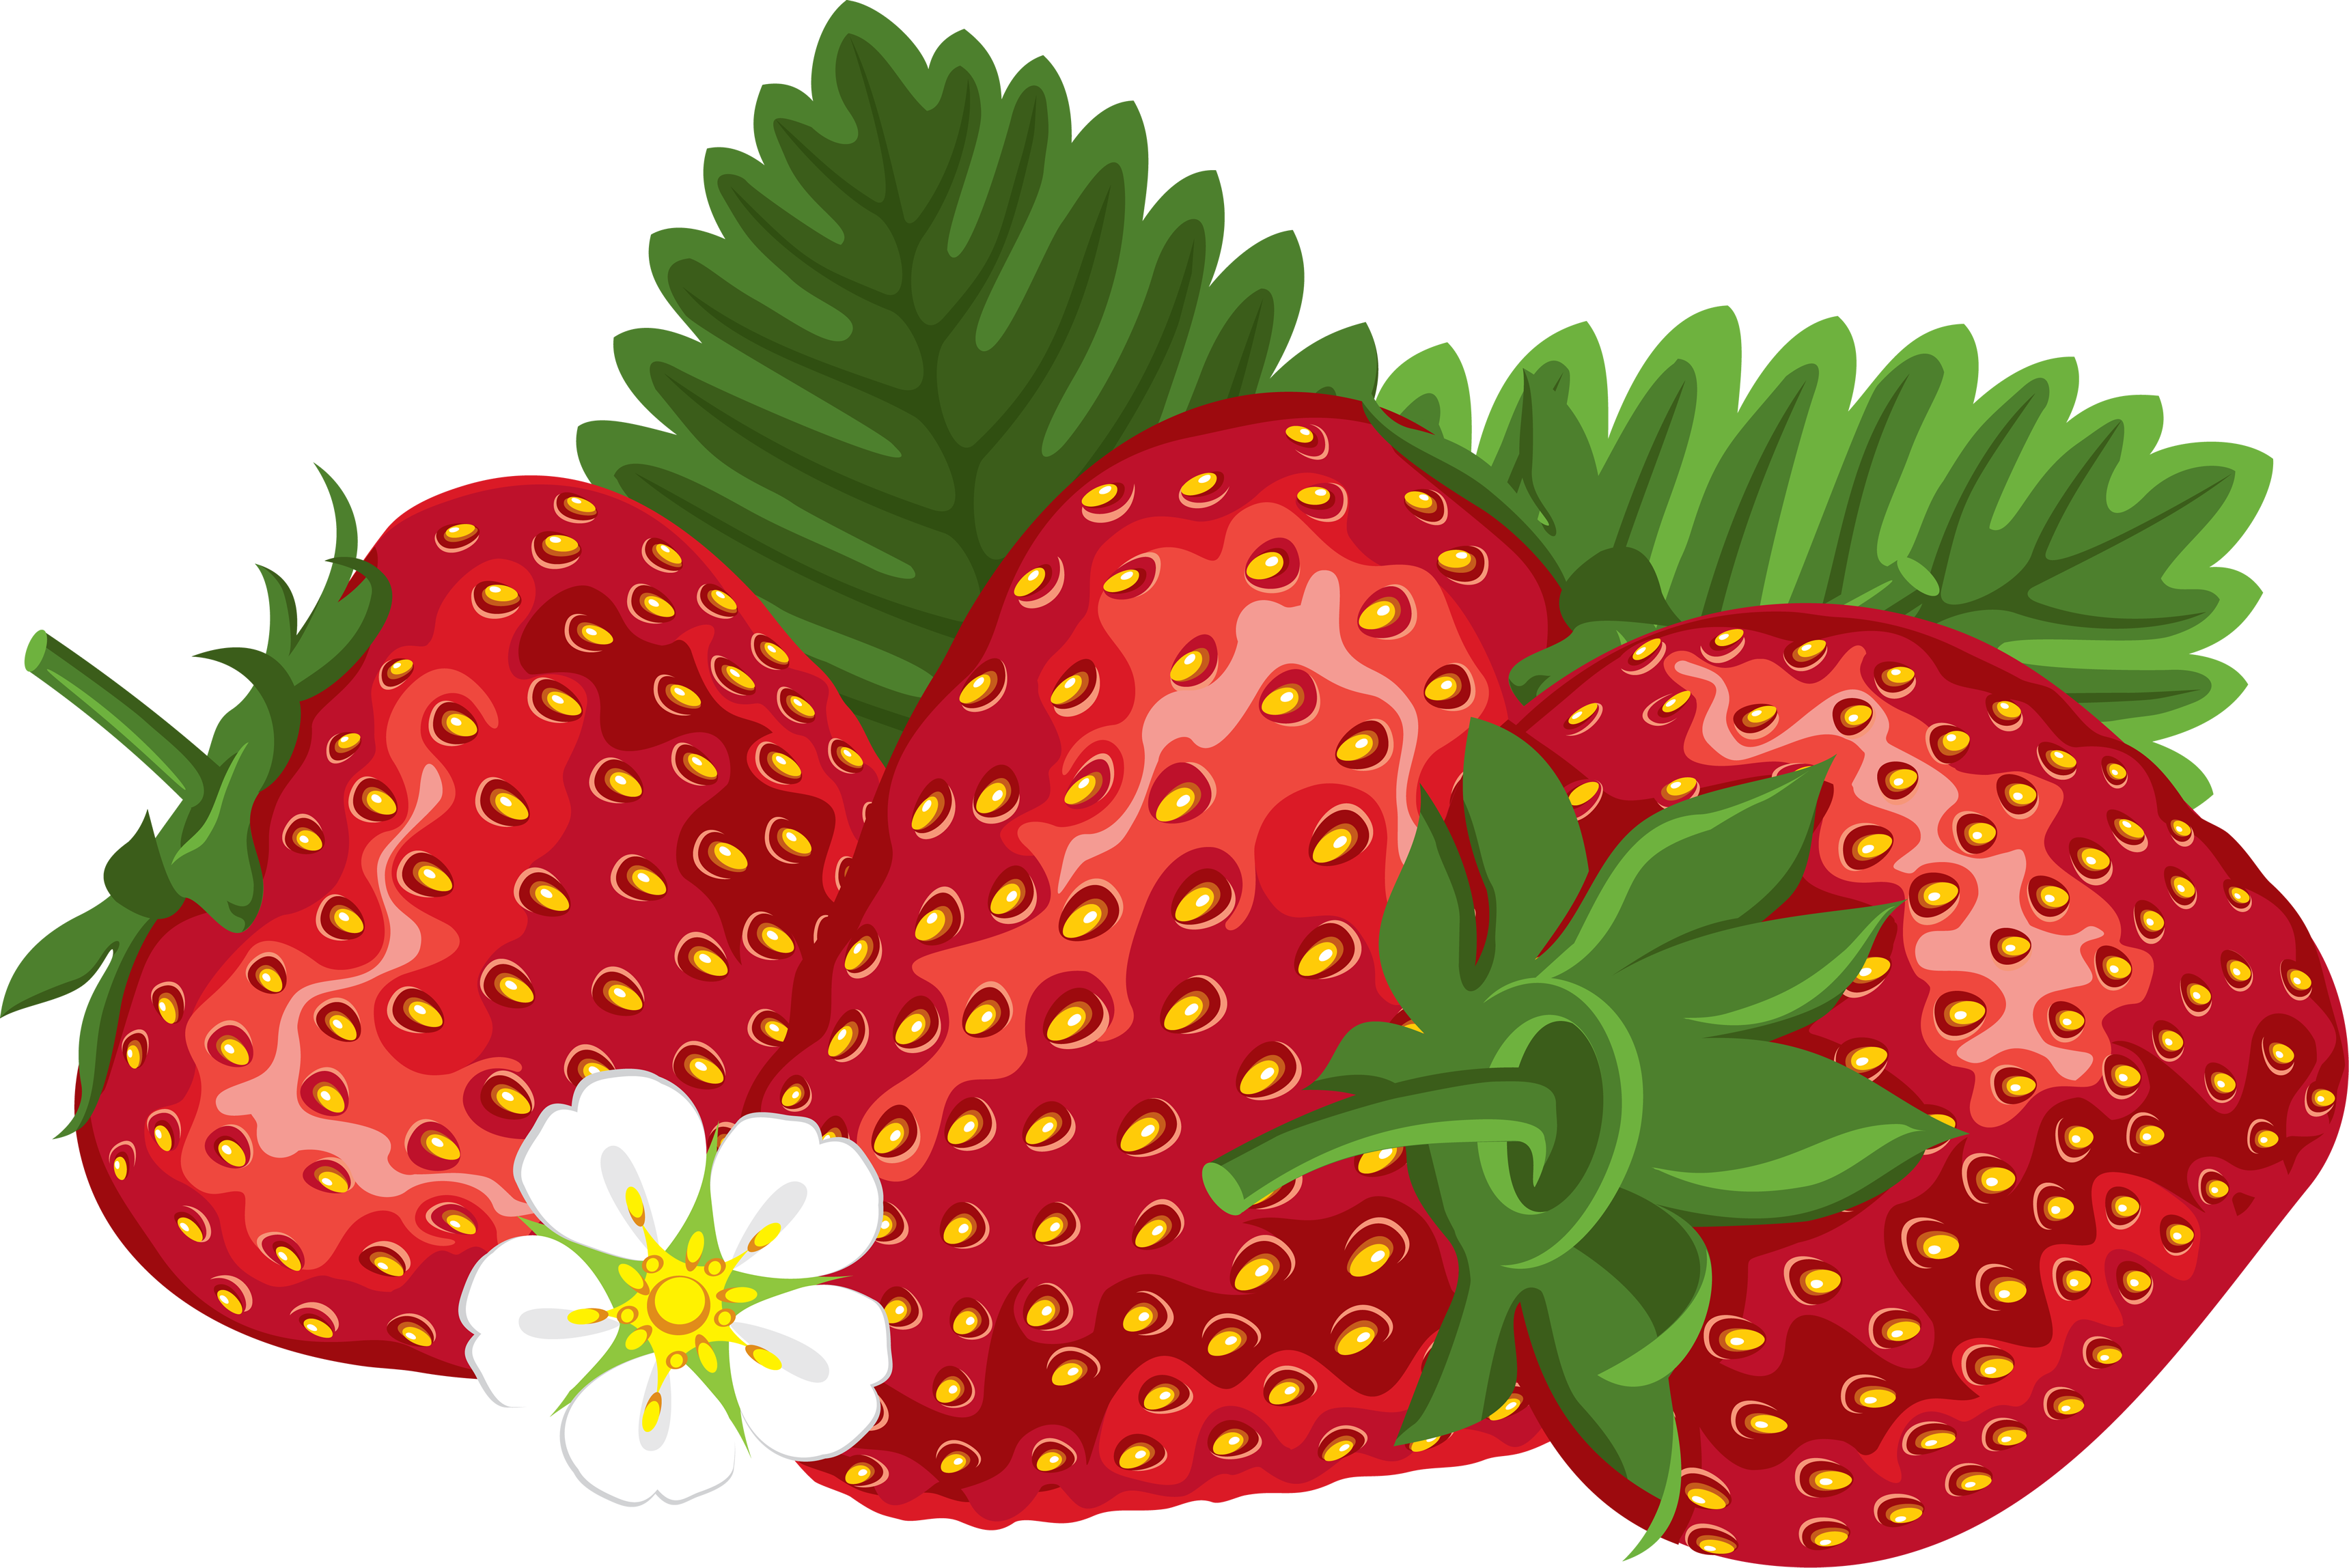 Heart shaped strawberry clipart free download Pin by luke on YCN Quorn: strawberry illustraions research page ... free download